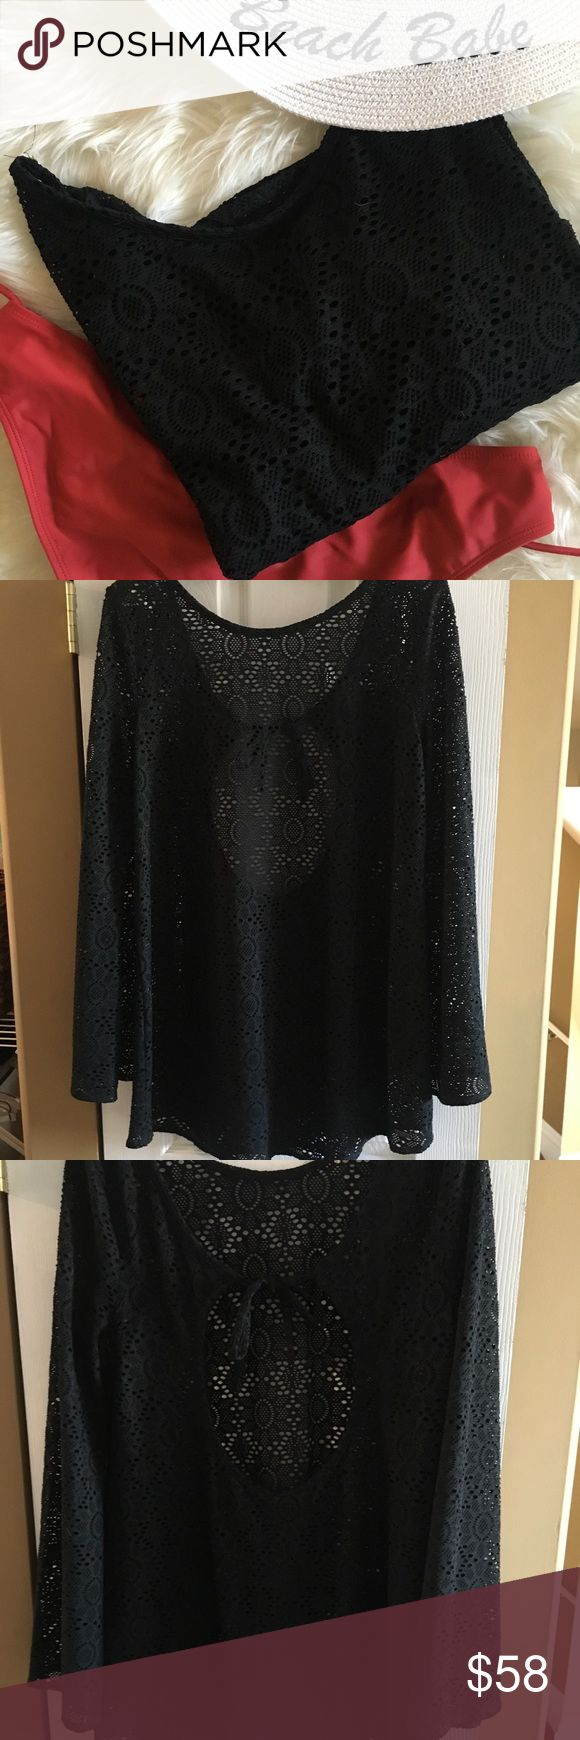 EUC Black Roxy Bathing Suit Cover up Escaping the cold weather with a warm vacation 🏝☀️? Add this long sleeve Roxy black net bathing suit 👙 coverup. So cute with the tie in the back and the slight flare at the bottom. I believe I cut out the tag because it showed through. Please ask questions prior to purchase and Happy Poshing 🛍🍾 Roxy Swim Coverups